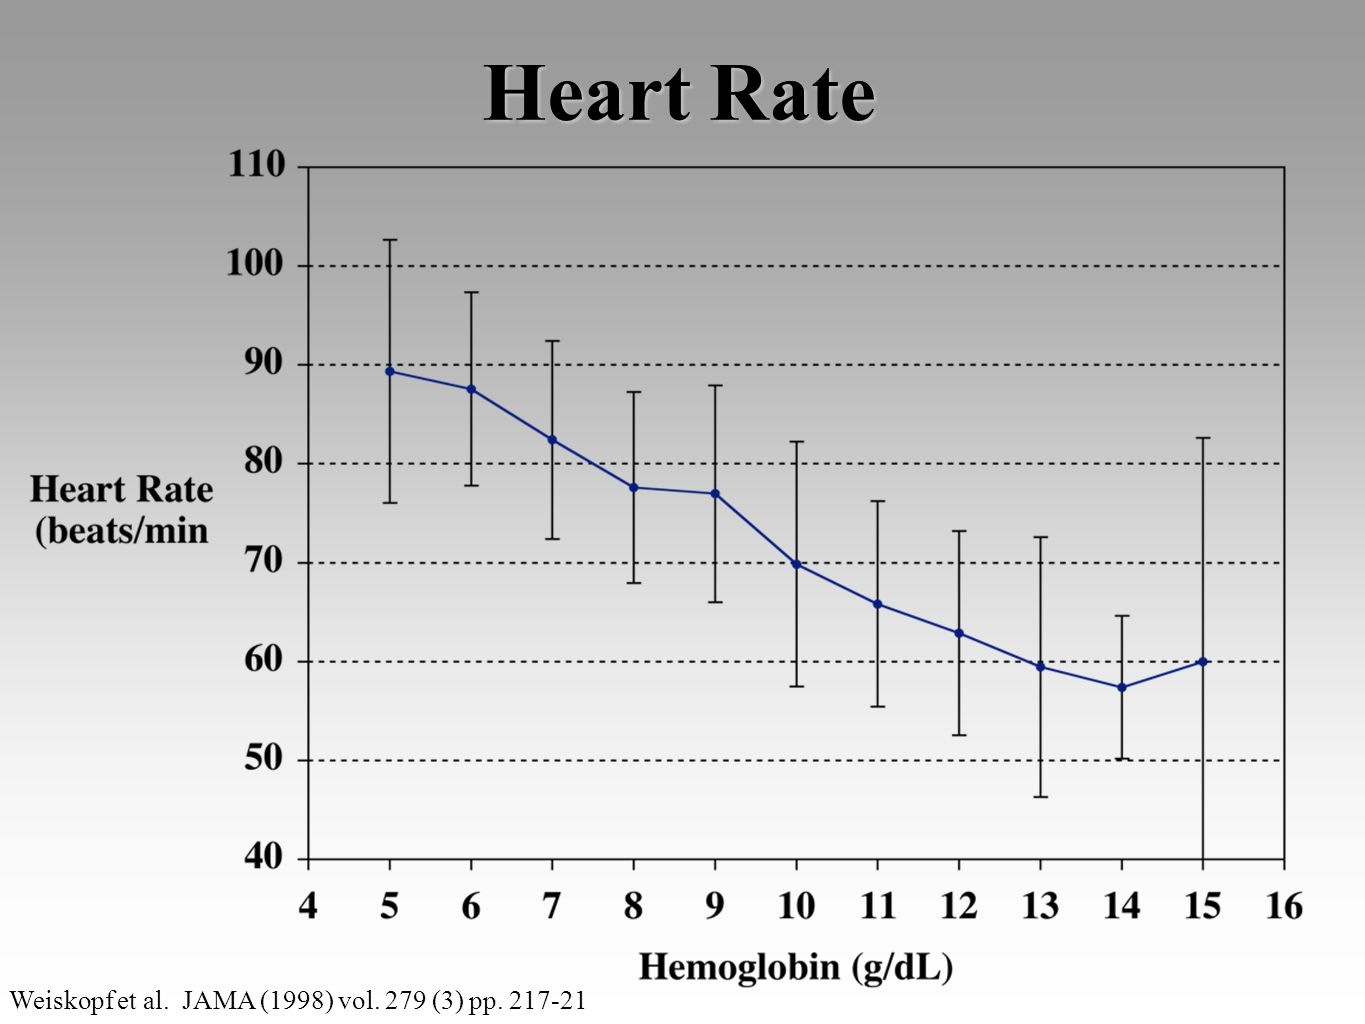 Heart Rate Weiskopf et al. JAMA (1998) vol. 279 (3) pp. 217-21